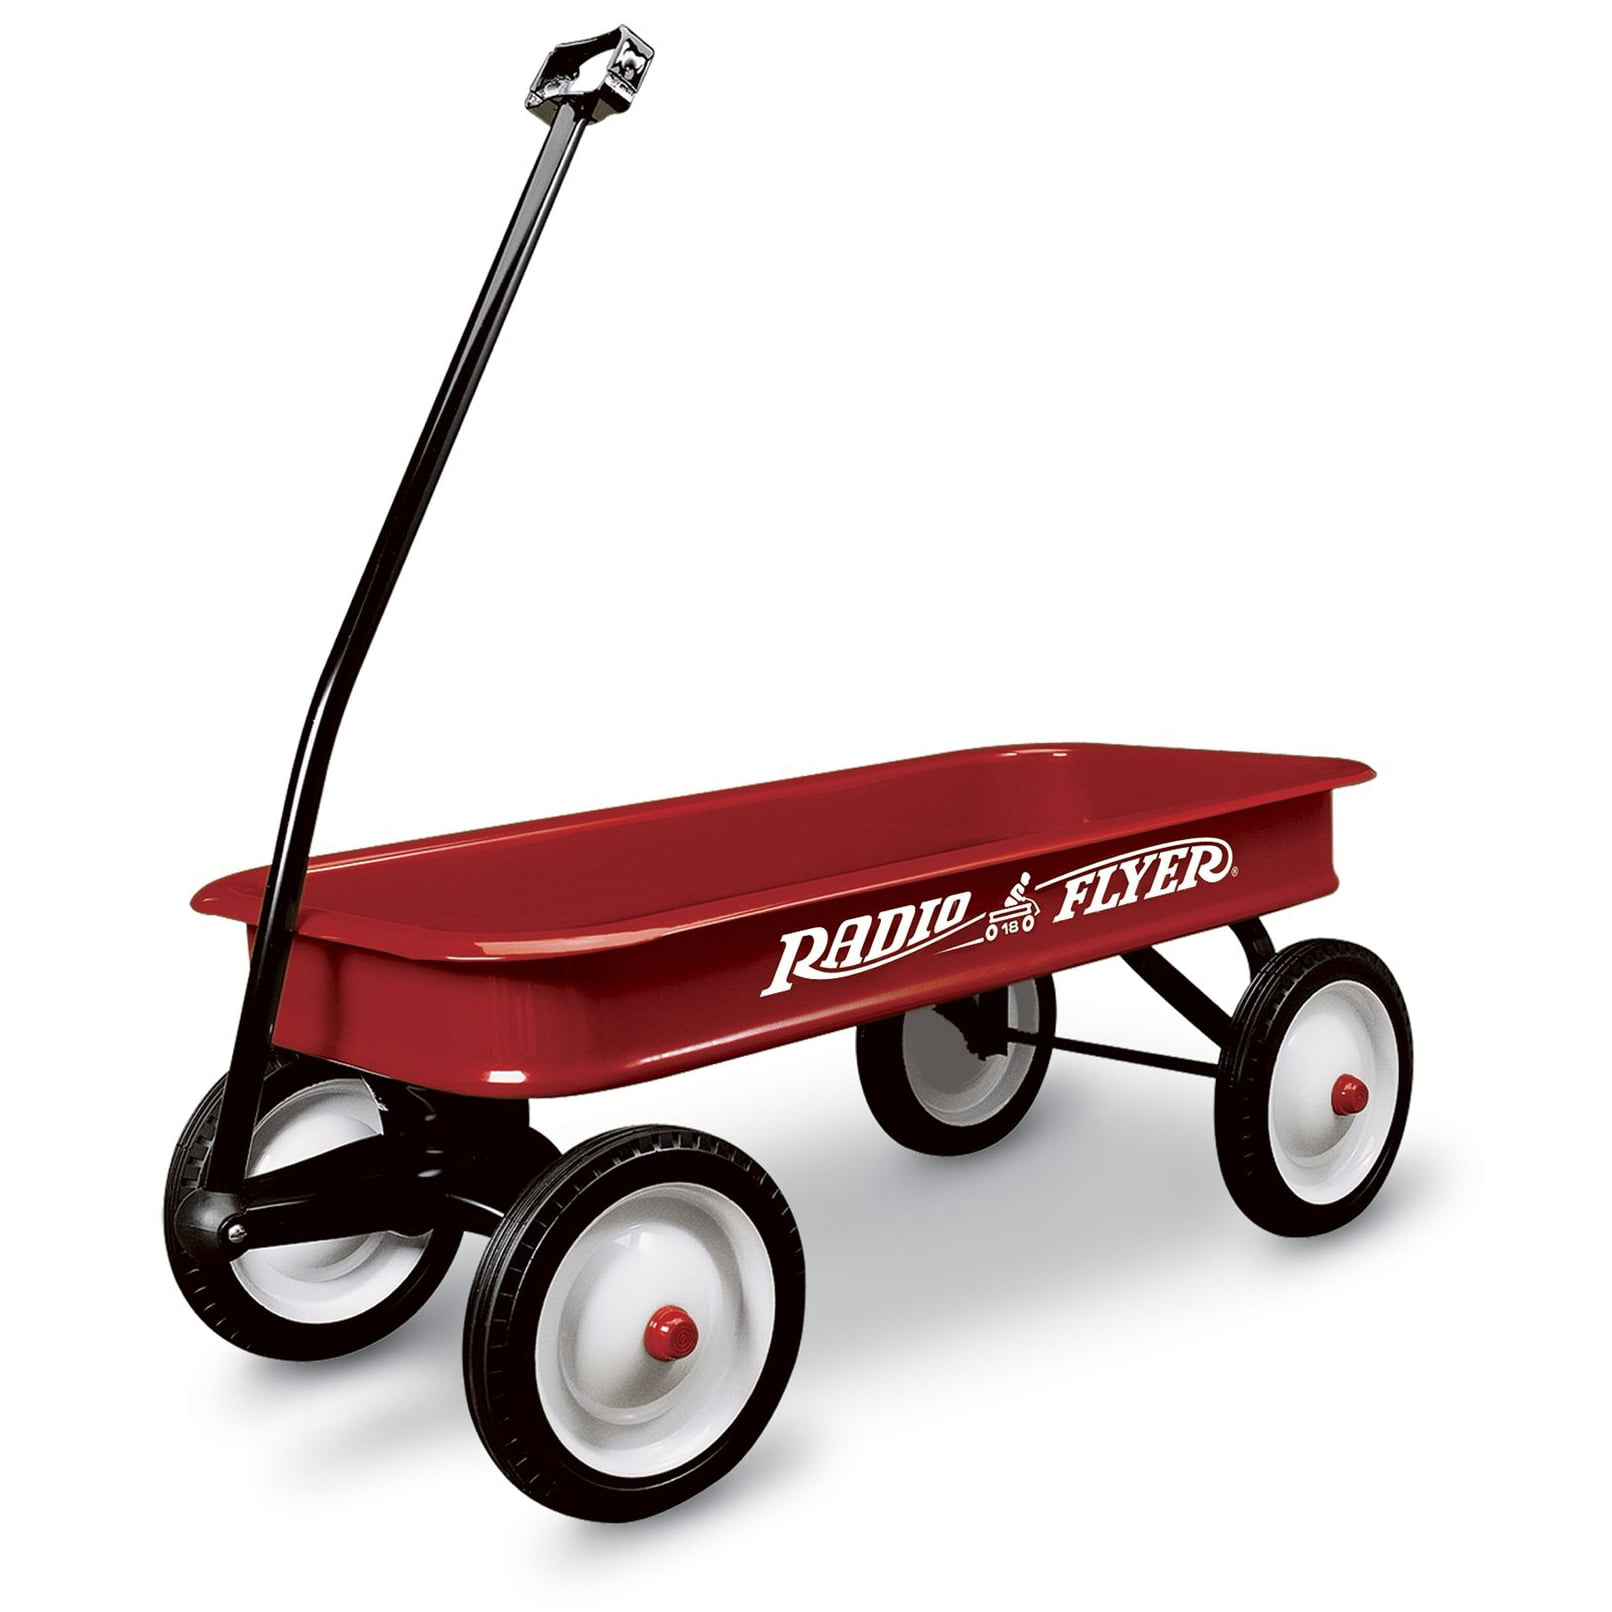 Radio Flyer Classic Kids Toddler Original Little Red Wagon 100th Anniversary Walmart Com Walmart Com